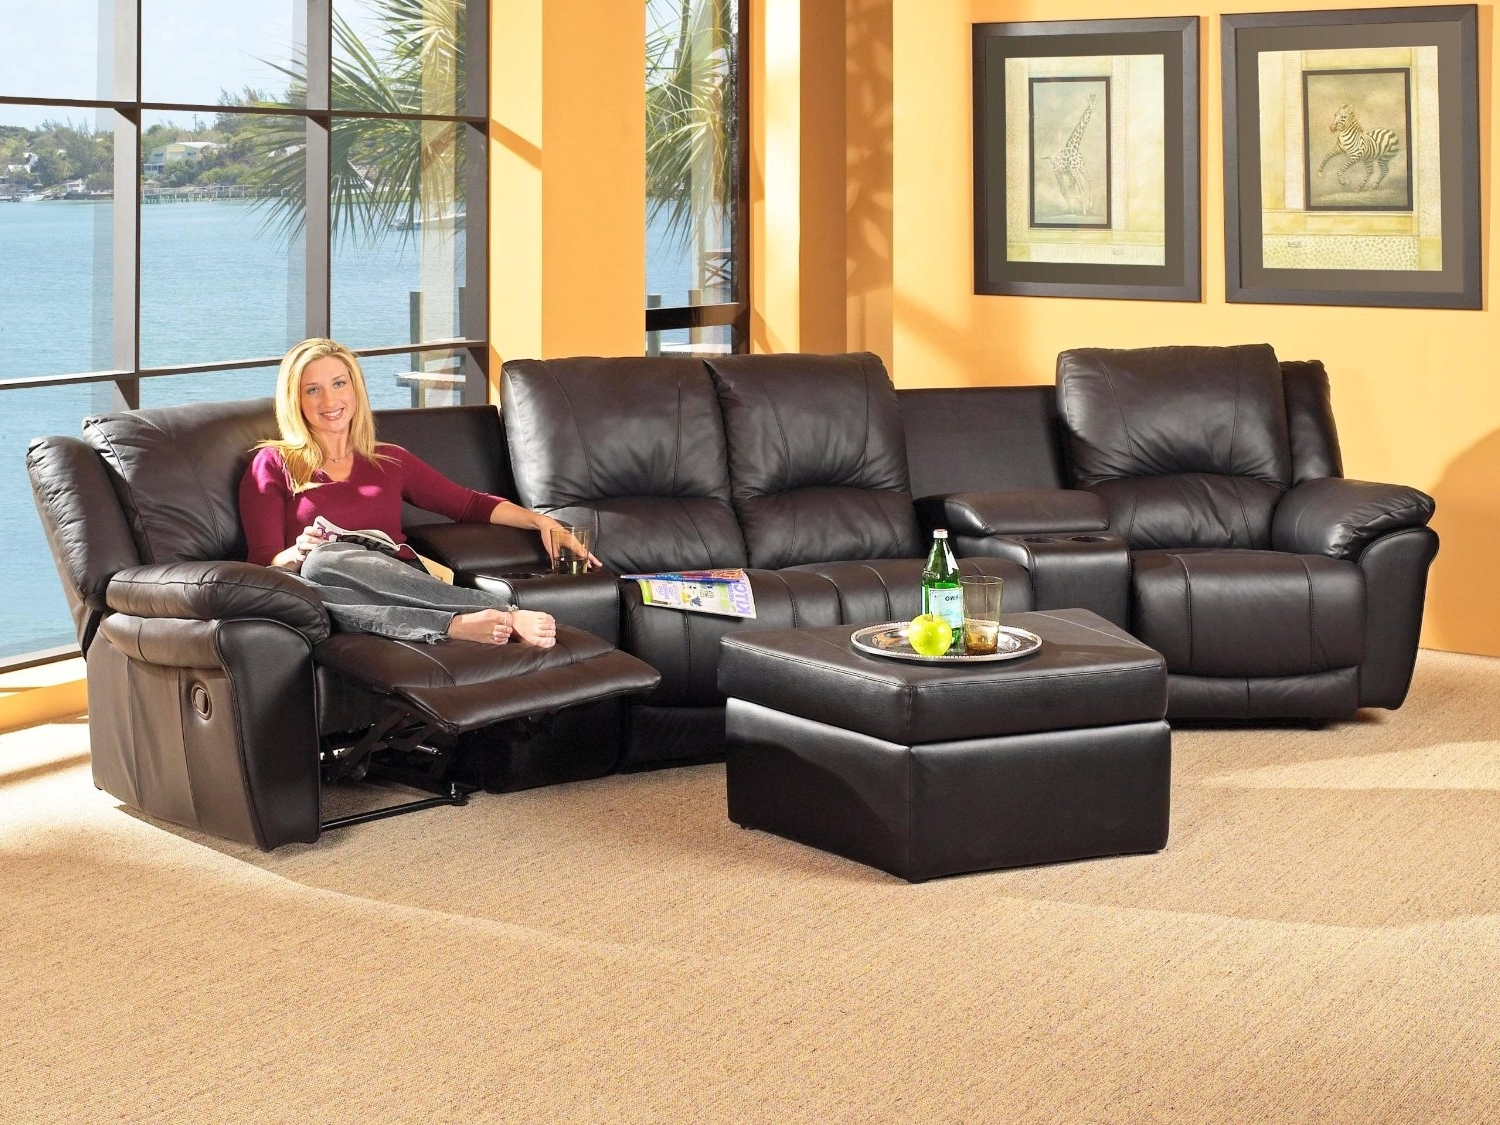 Recent Small Sectional Sofas For Small Spaces Within Small Space Sectional Sofa – Decofurnish (View 16 of 20)